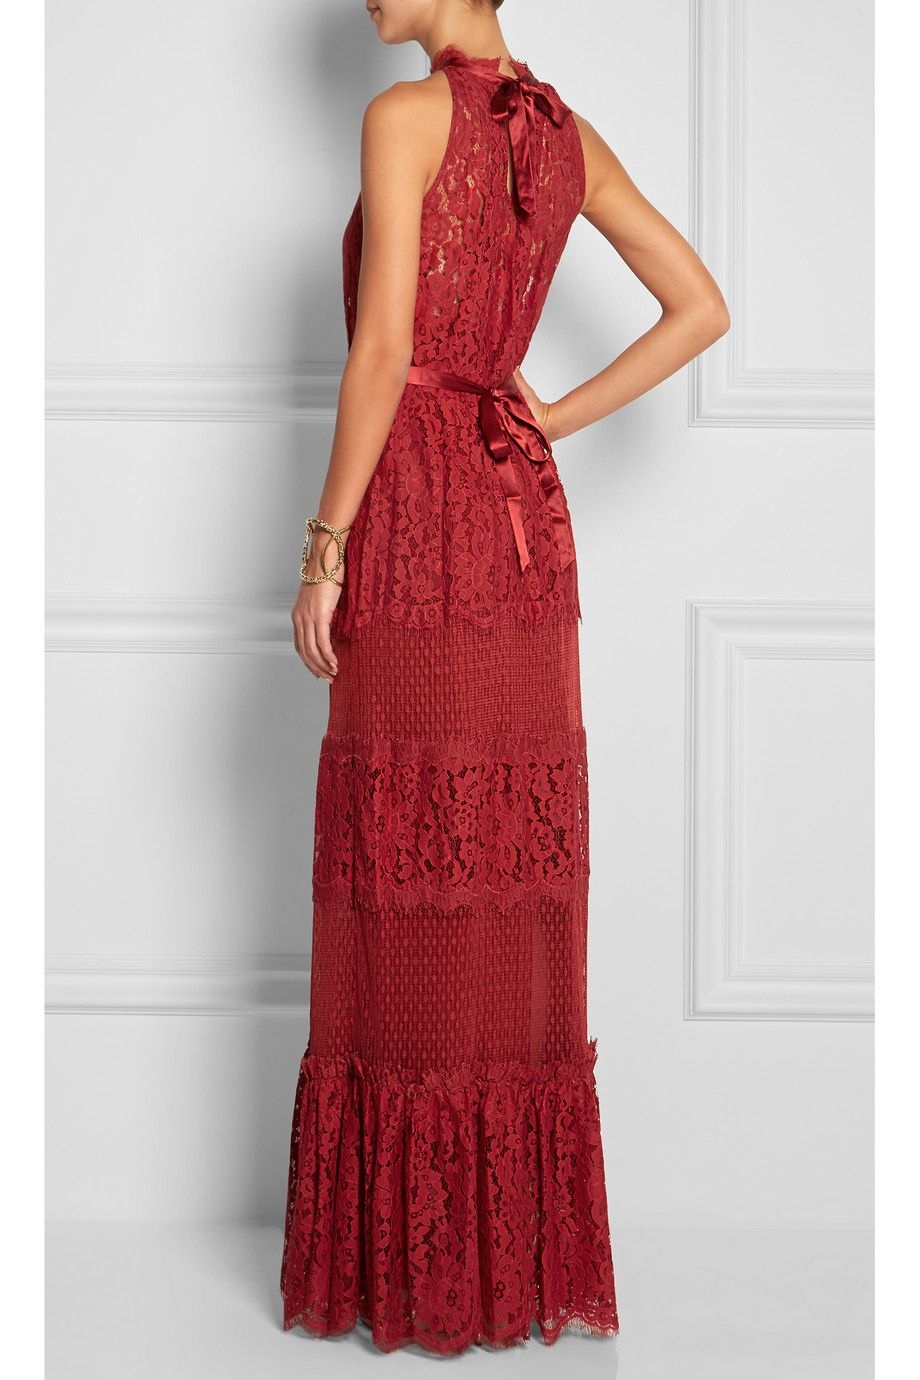 Temperley london fashion u style for me pinterest